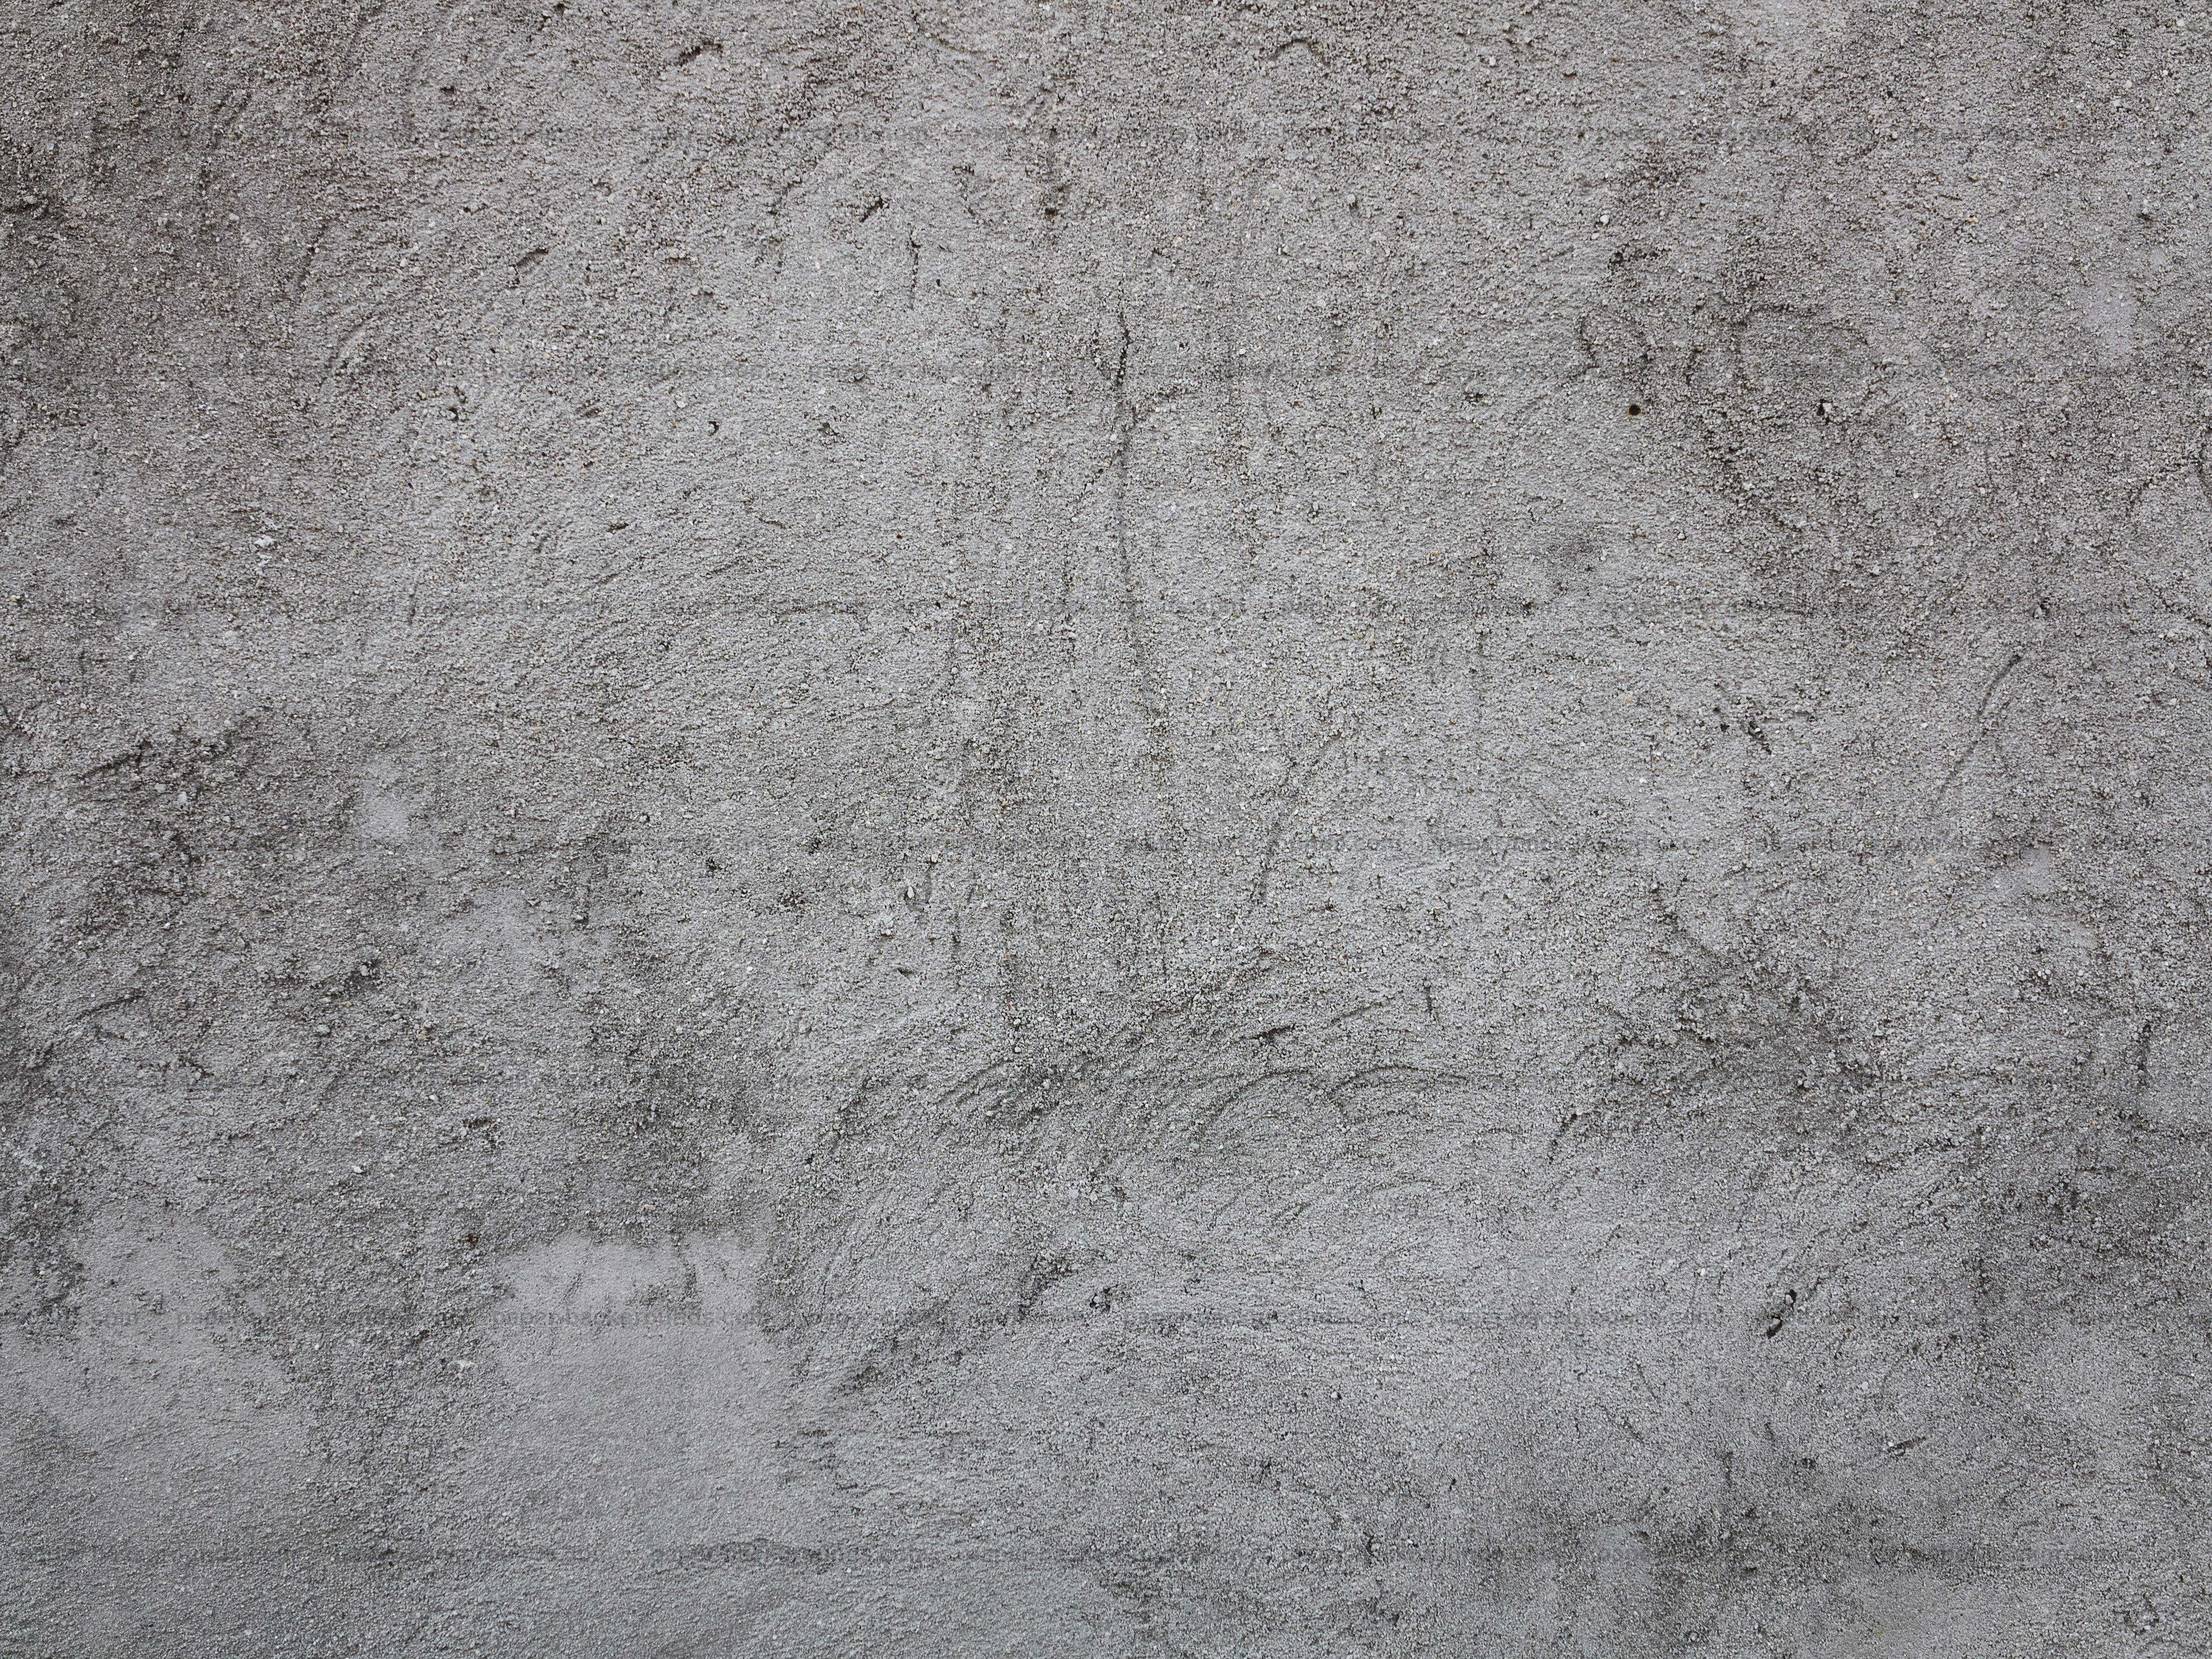 Gray Concrete Wall Texture High Resolution 4352 x 3264 pixels Large 4352x3264